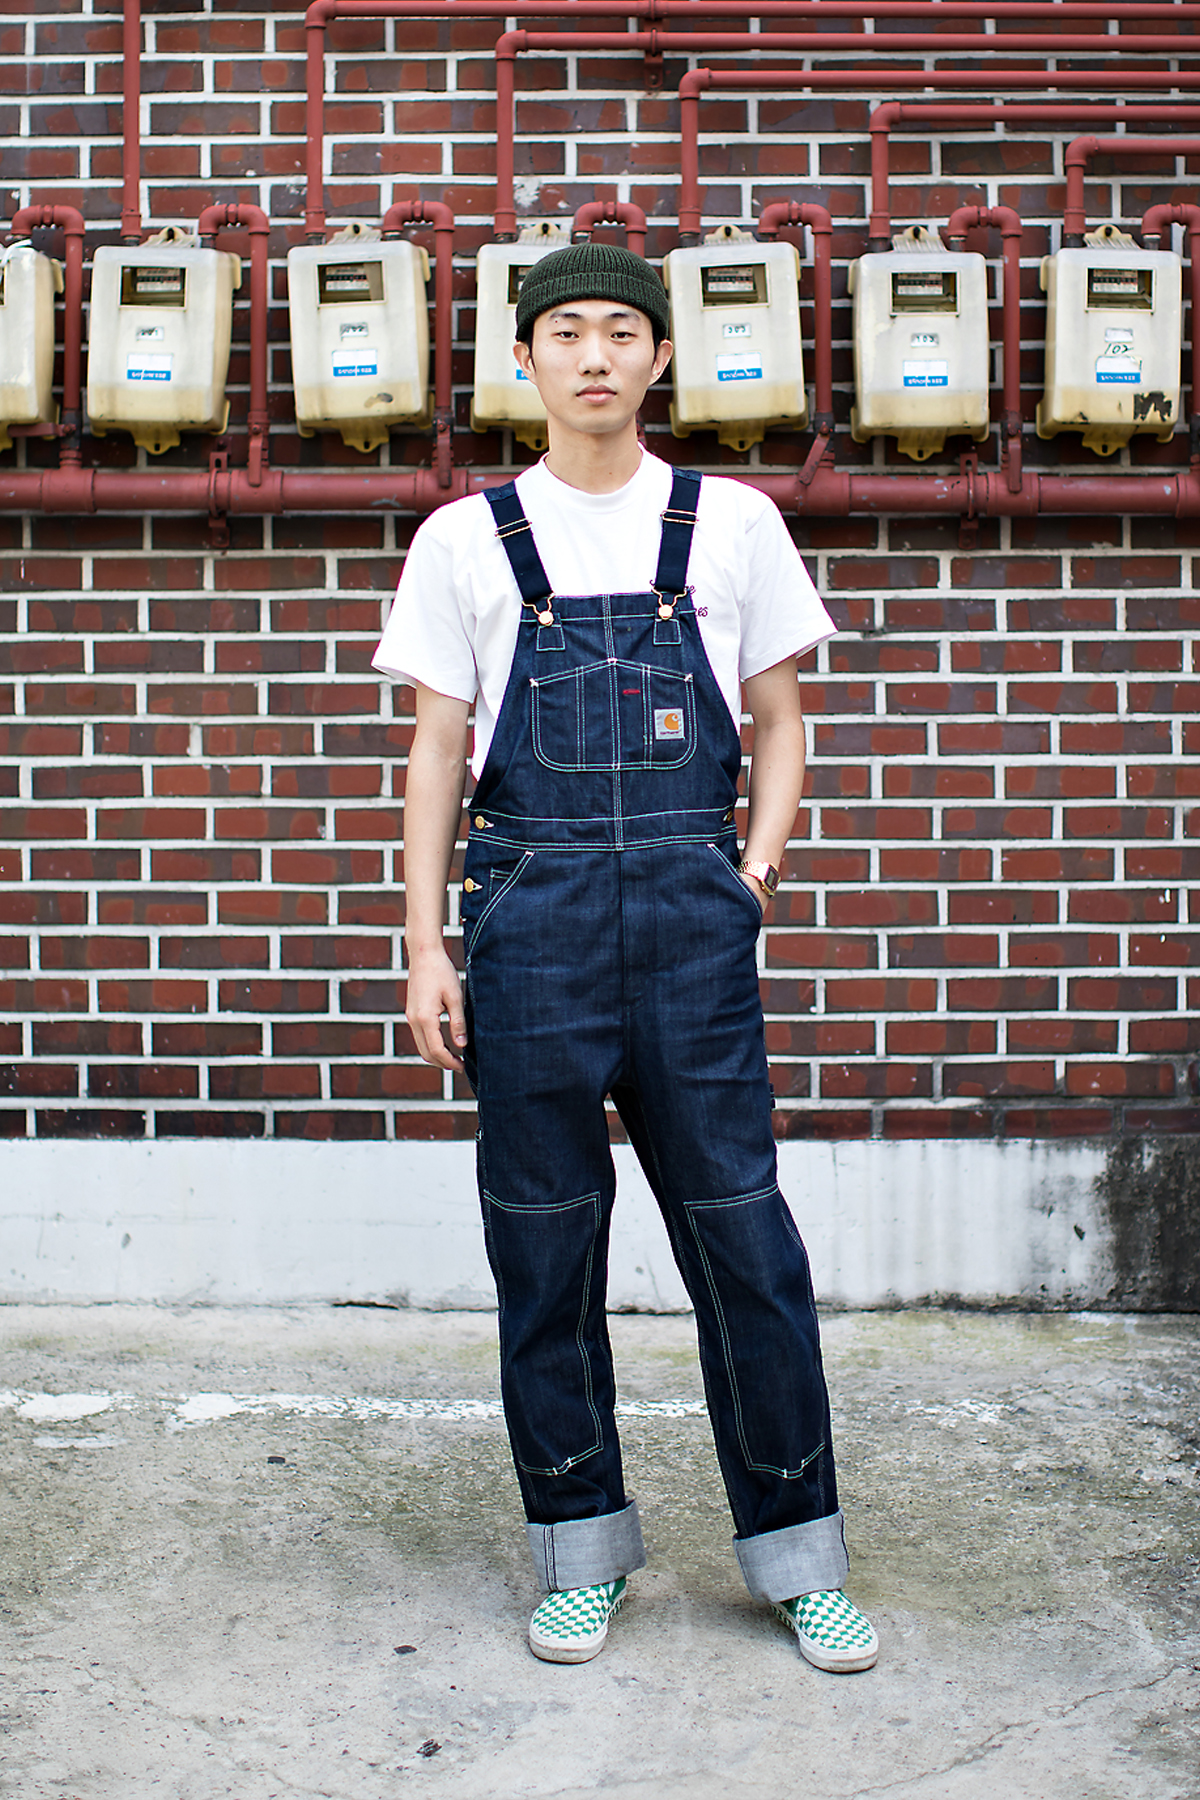 Yoo Seungwoo, Street Fashion 2017 in Seoul.jpg